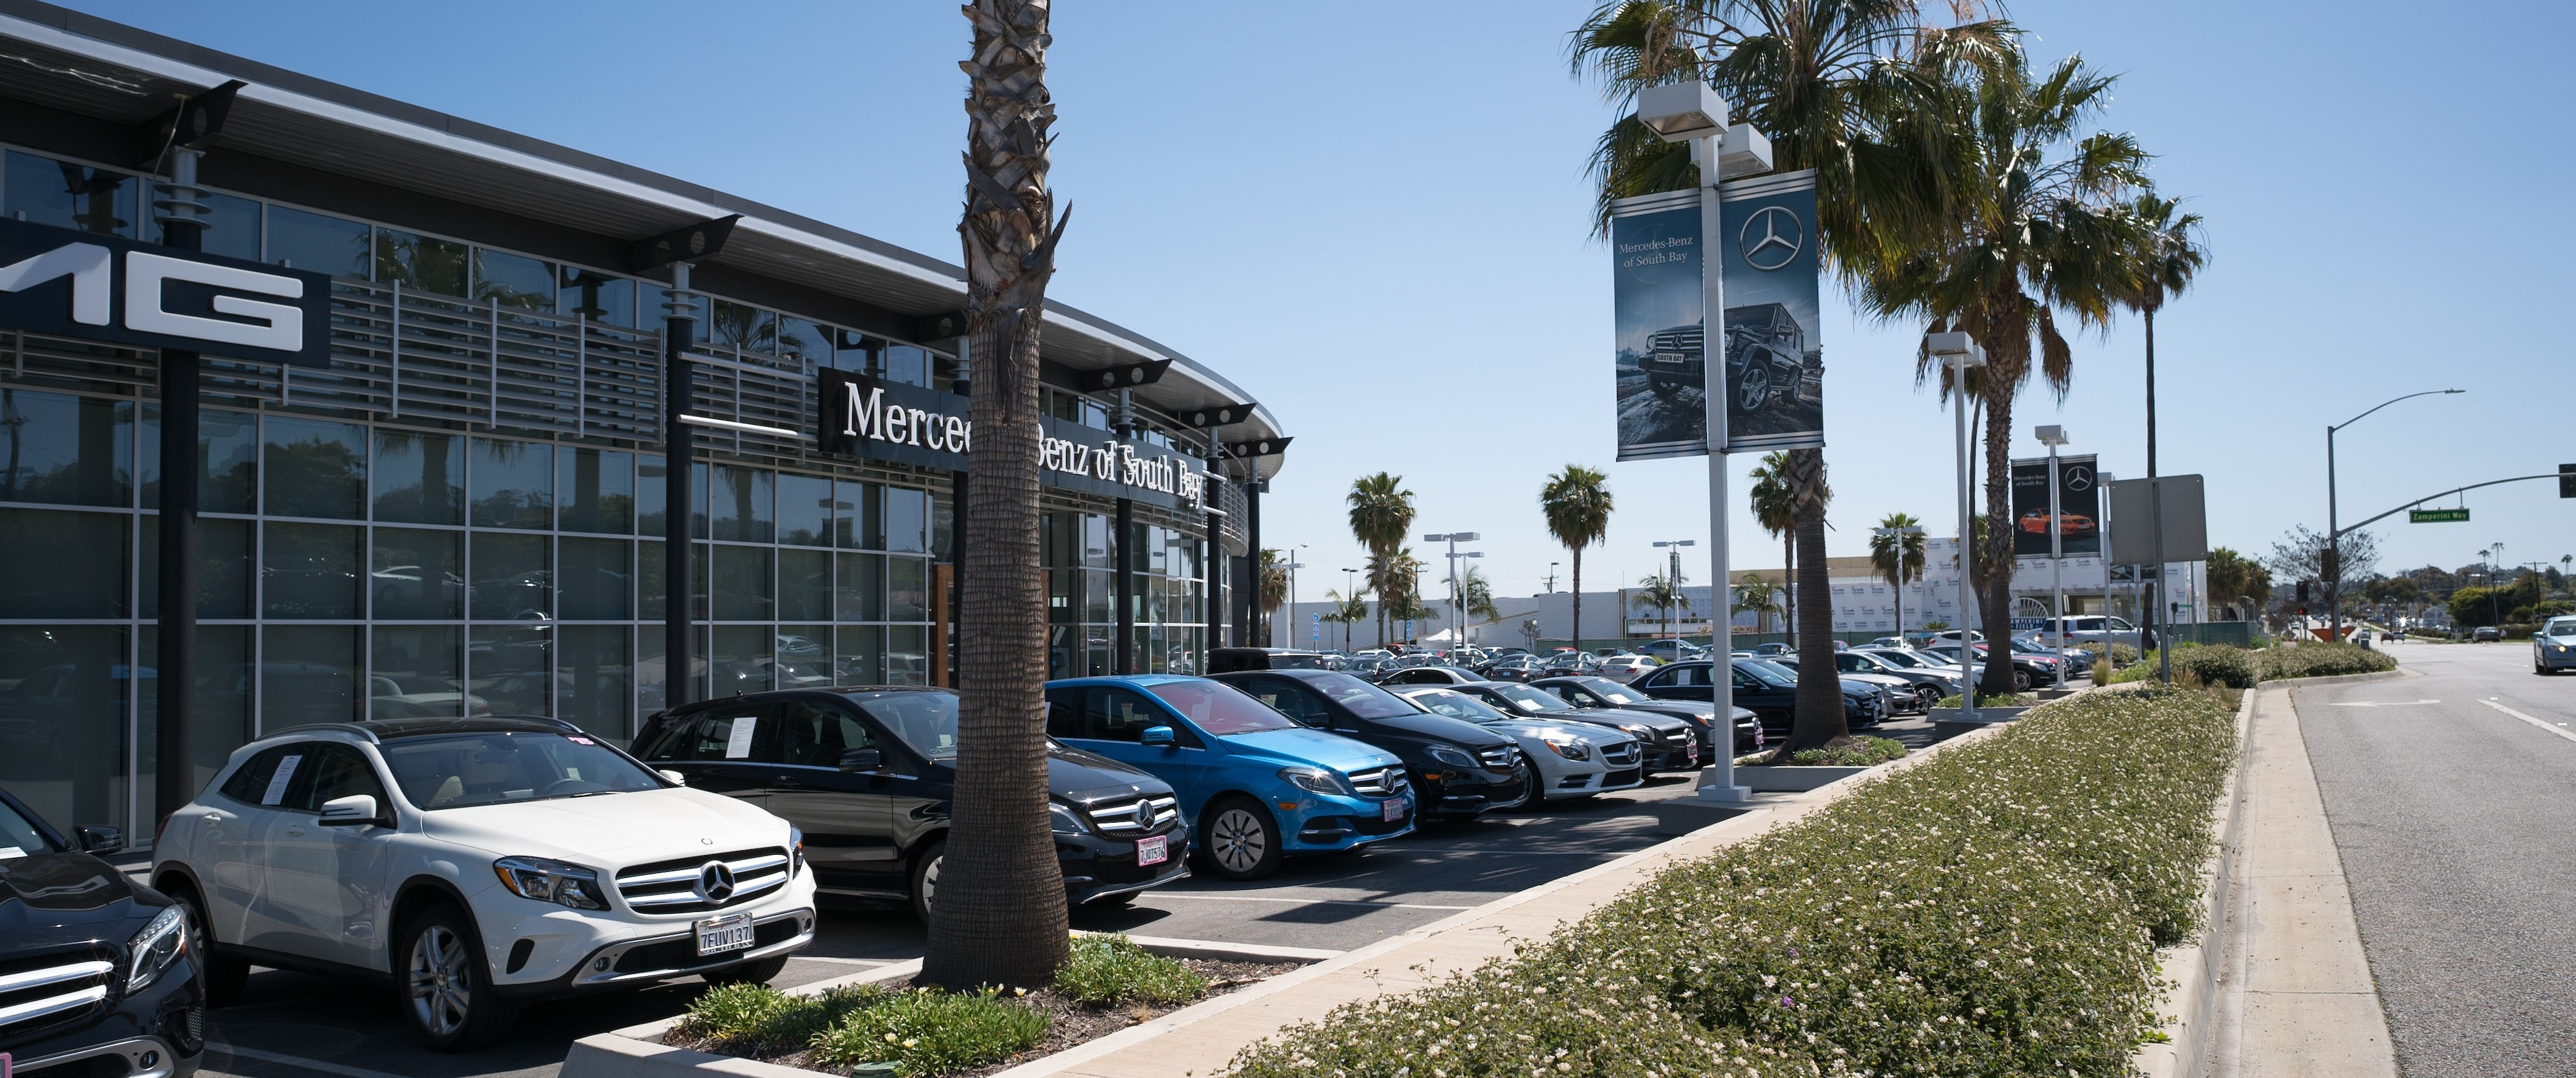 About Mercedes Benz Of South Bay Your Premier Torrance Mercedes